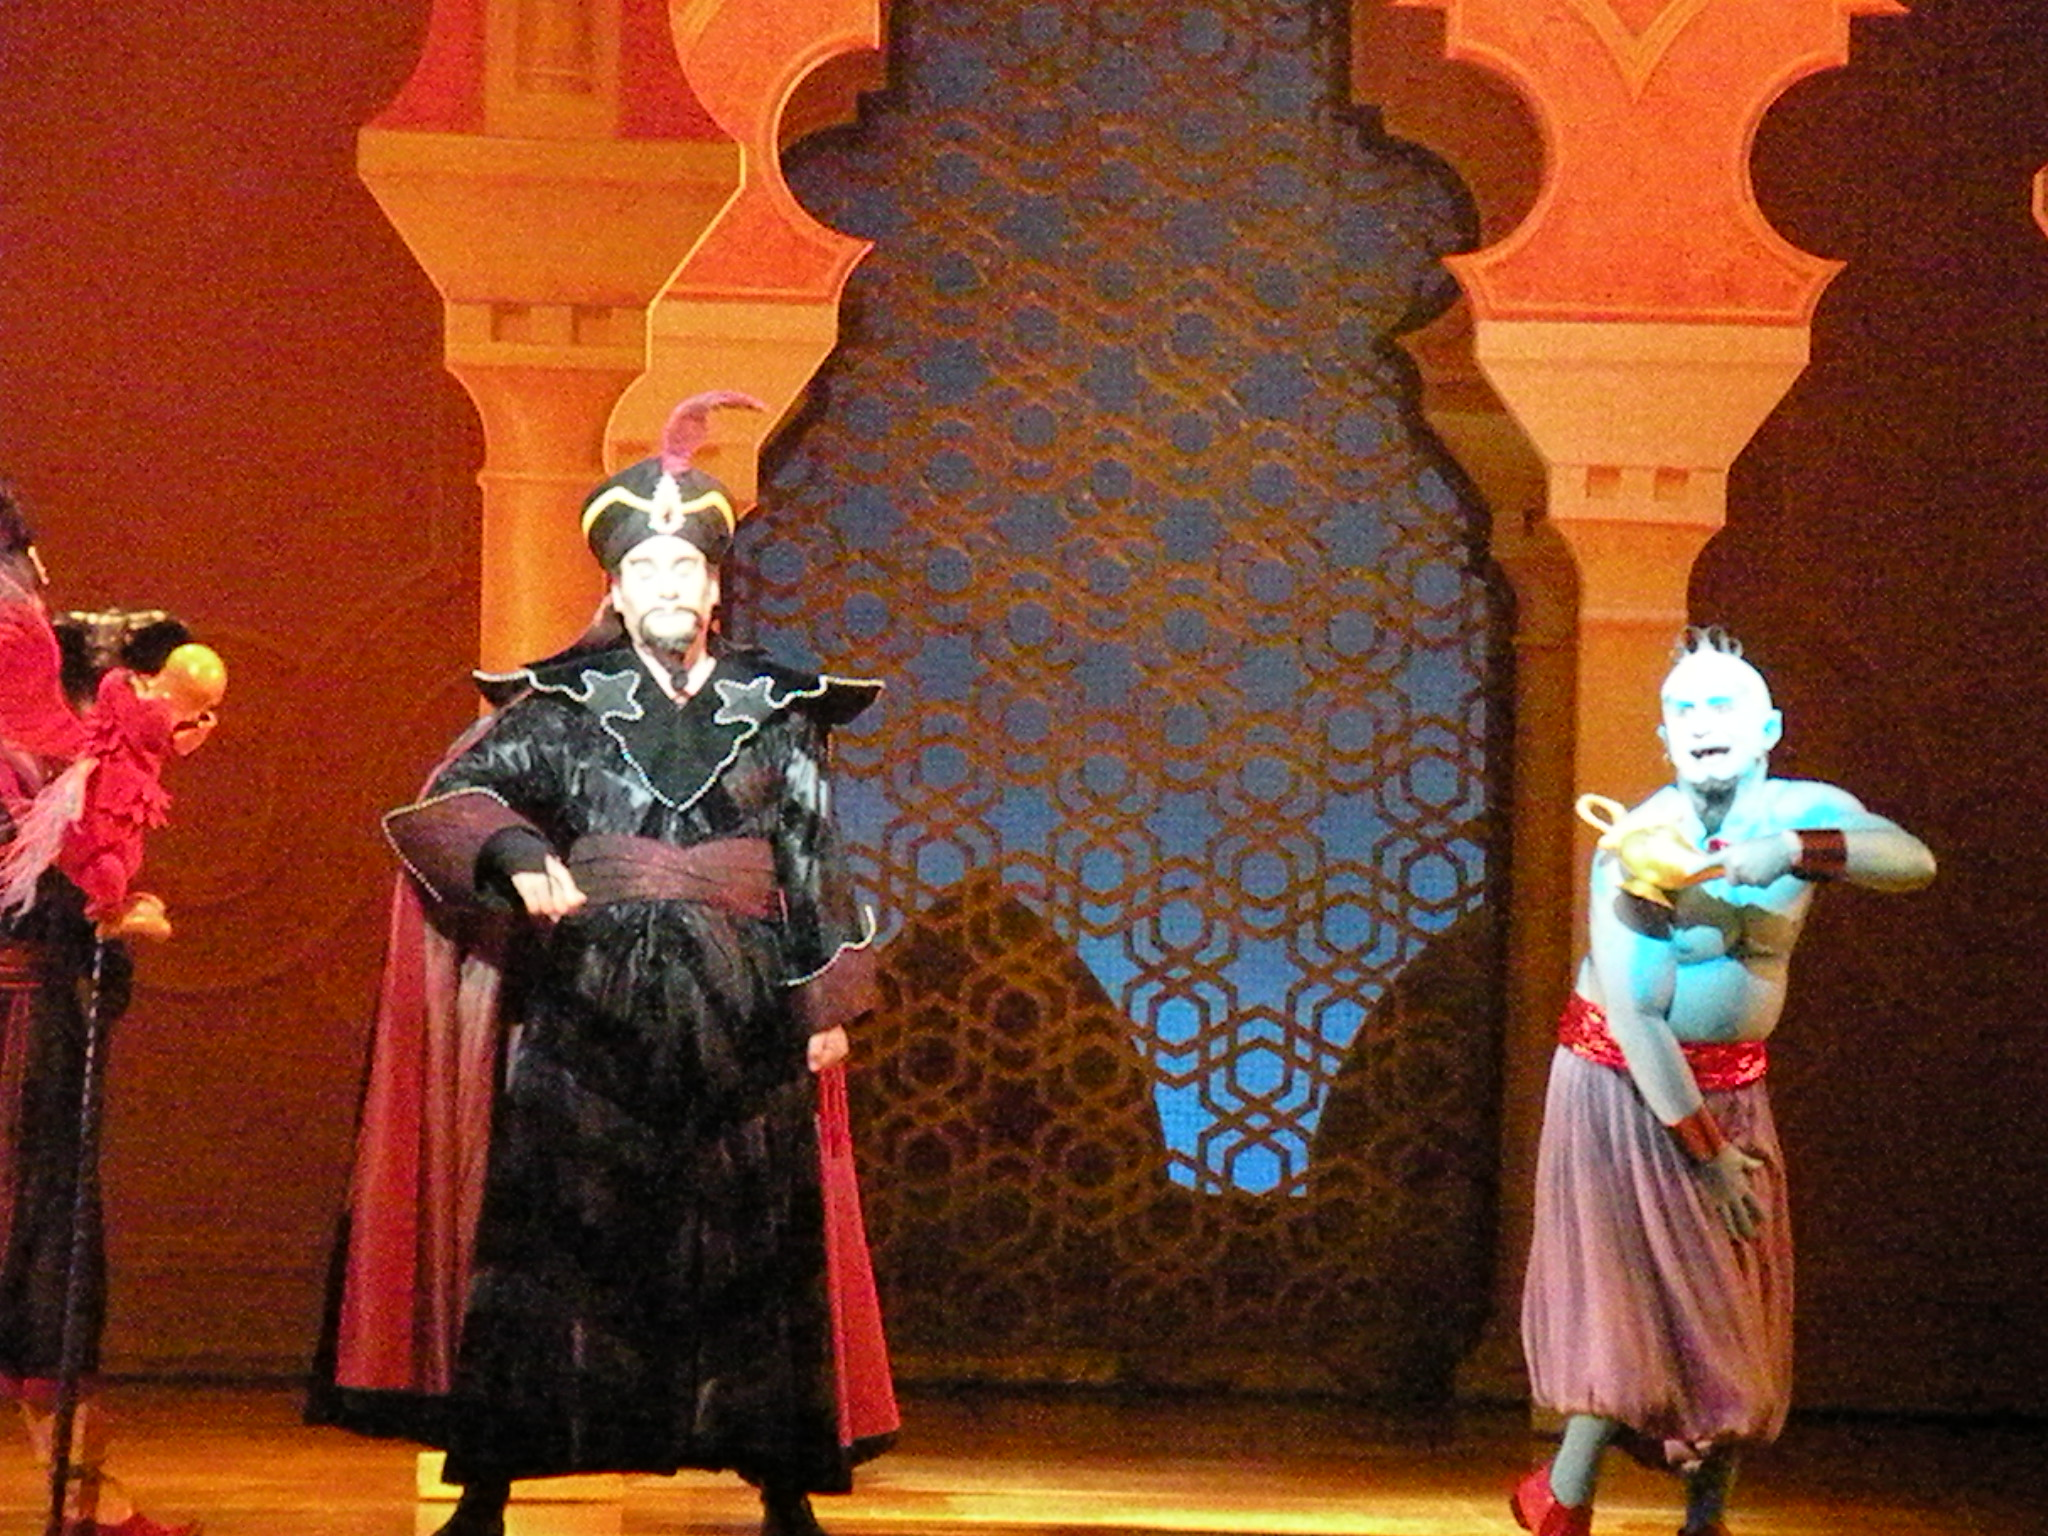 Jafar gets the lamp and finds Genie mid-shower.